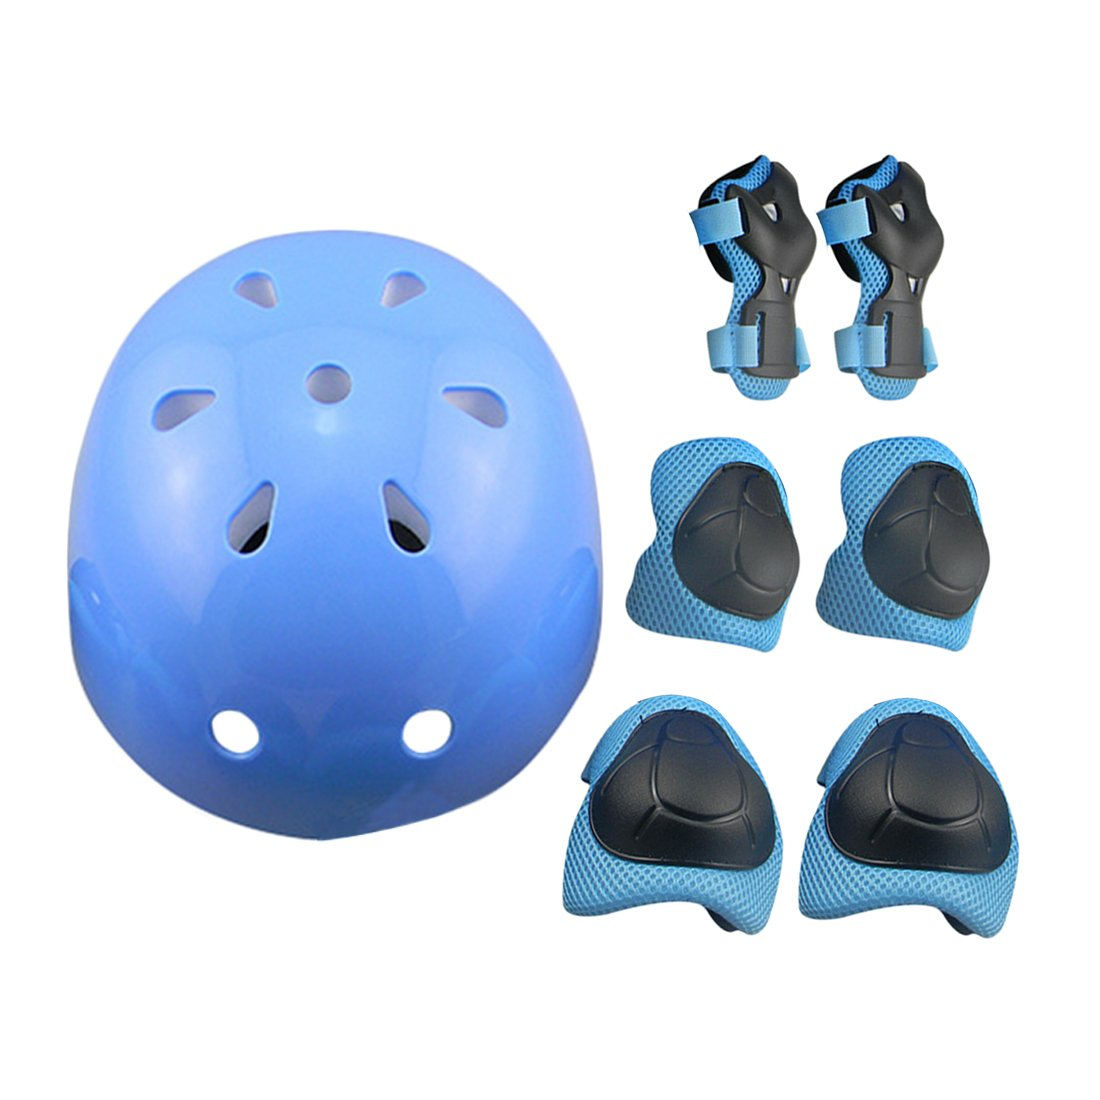 7Pcs Kids Sports Safety Protective Gear Set, RuiyiF Elbow Pad Knee Support Wrist Guard and Helmet for Children Skateboard Skating Blading Cycling Riding - Blue